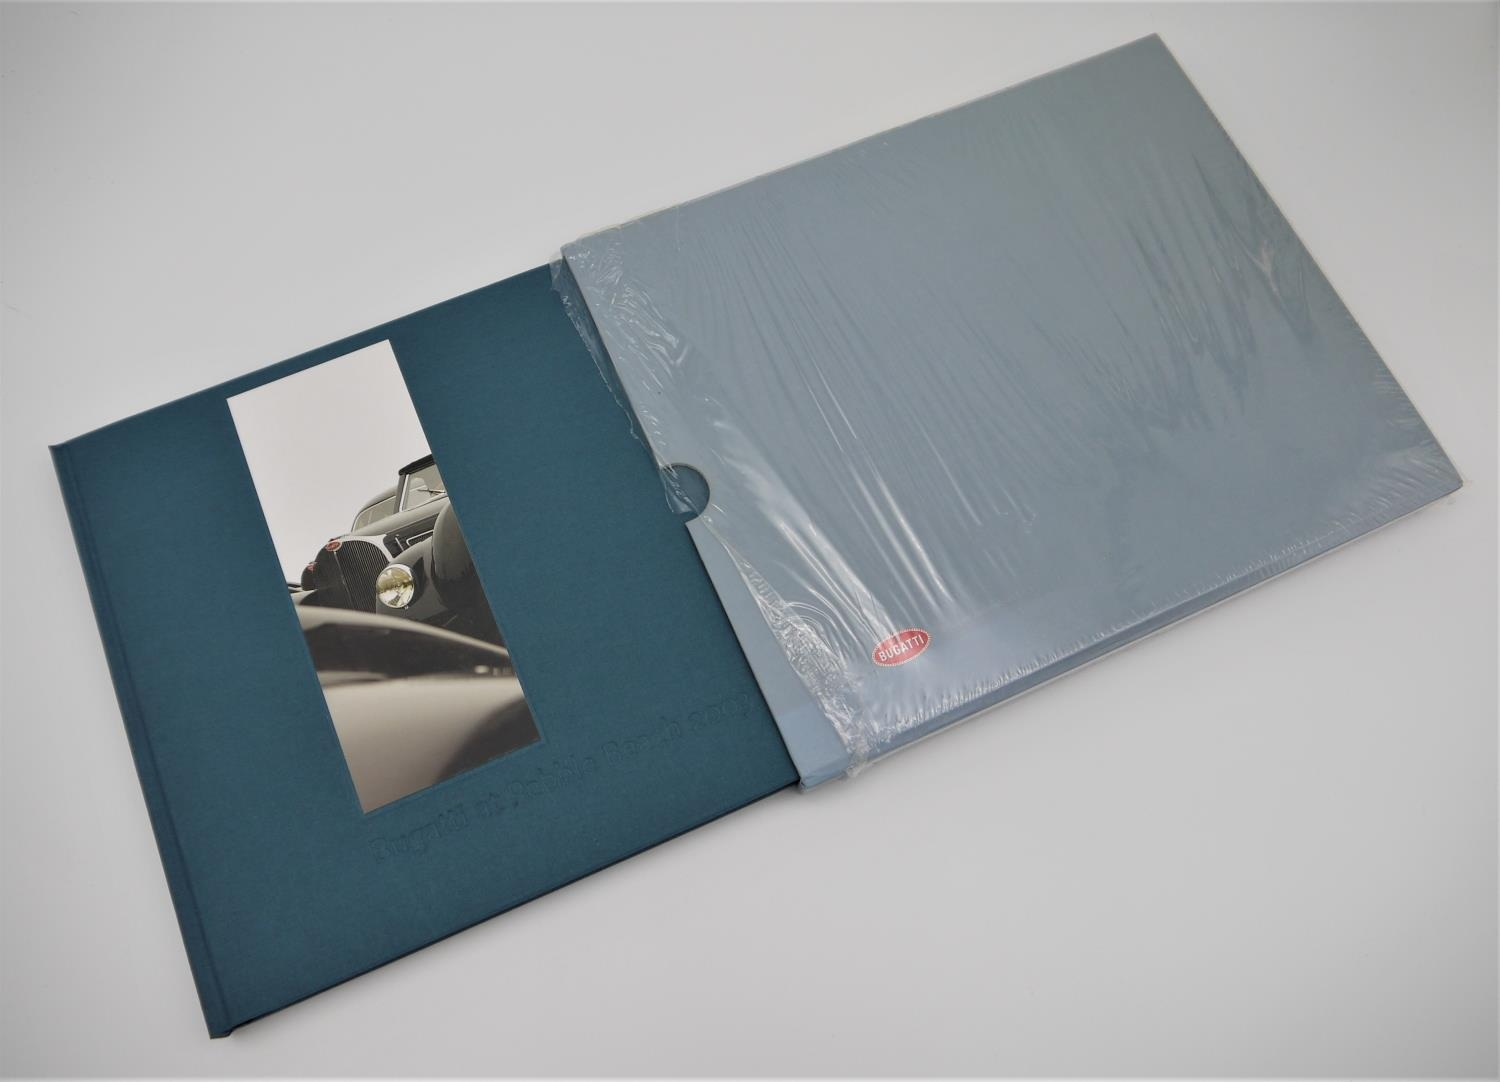 BUGATTI AUTOMOBILES: BUGATTI AT PEBBLE BEACH 2003 with numerous photographs, this book details the